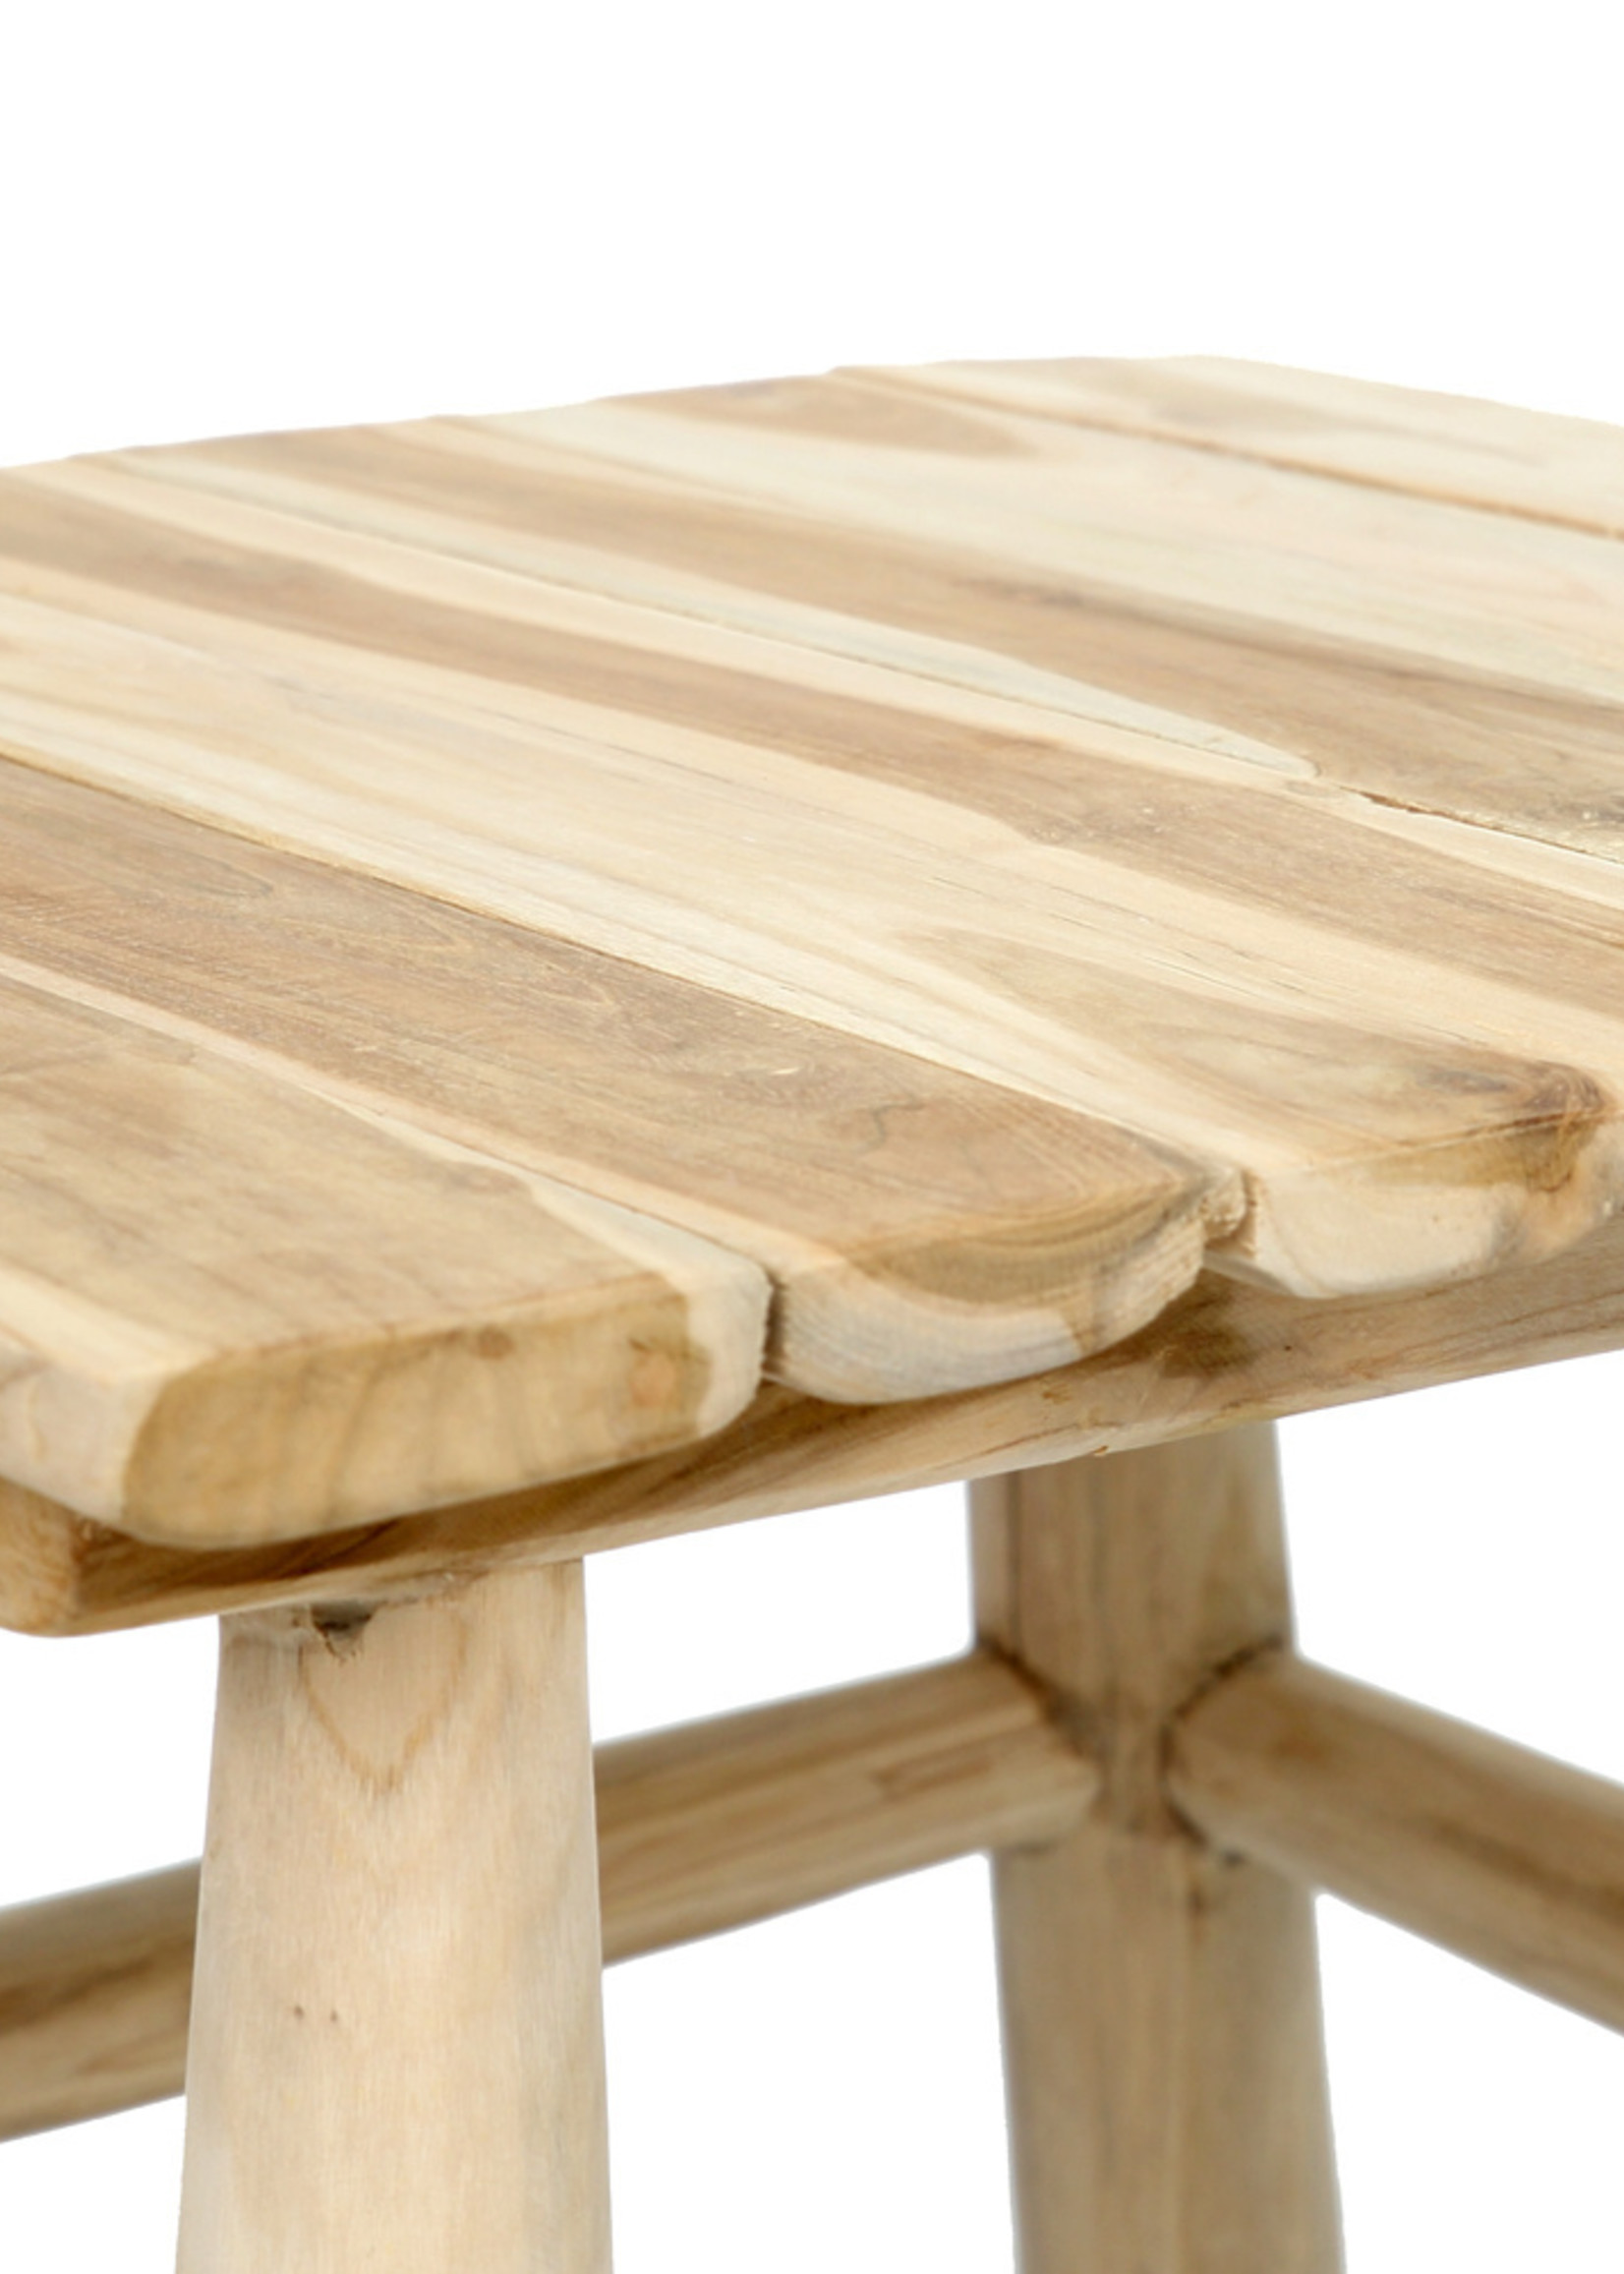 The Island Side Table - Natural